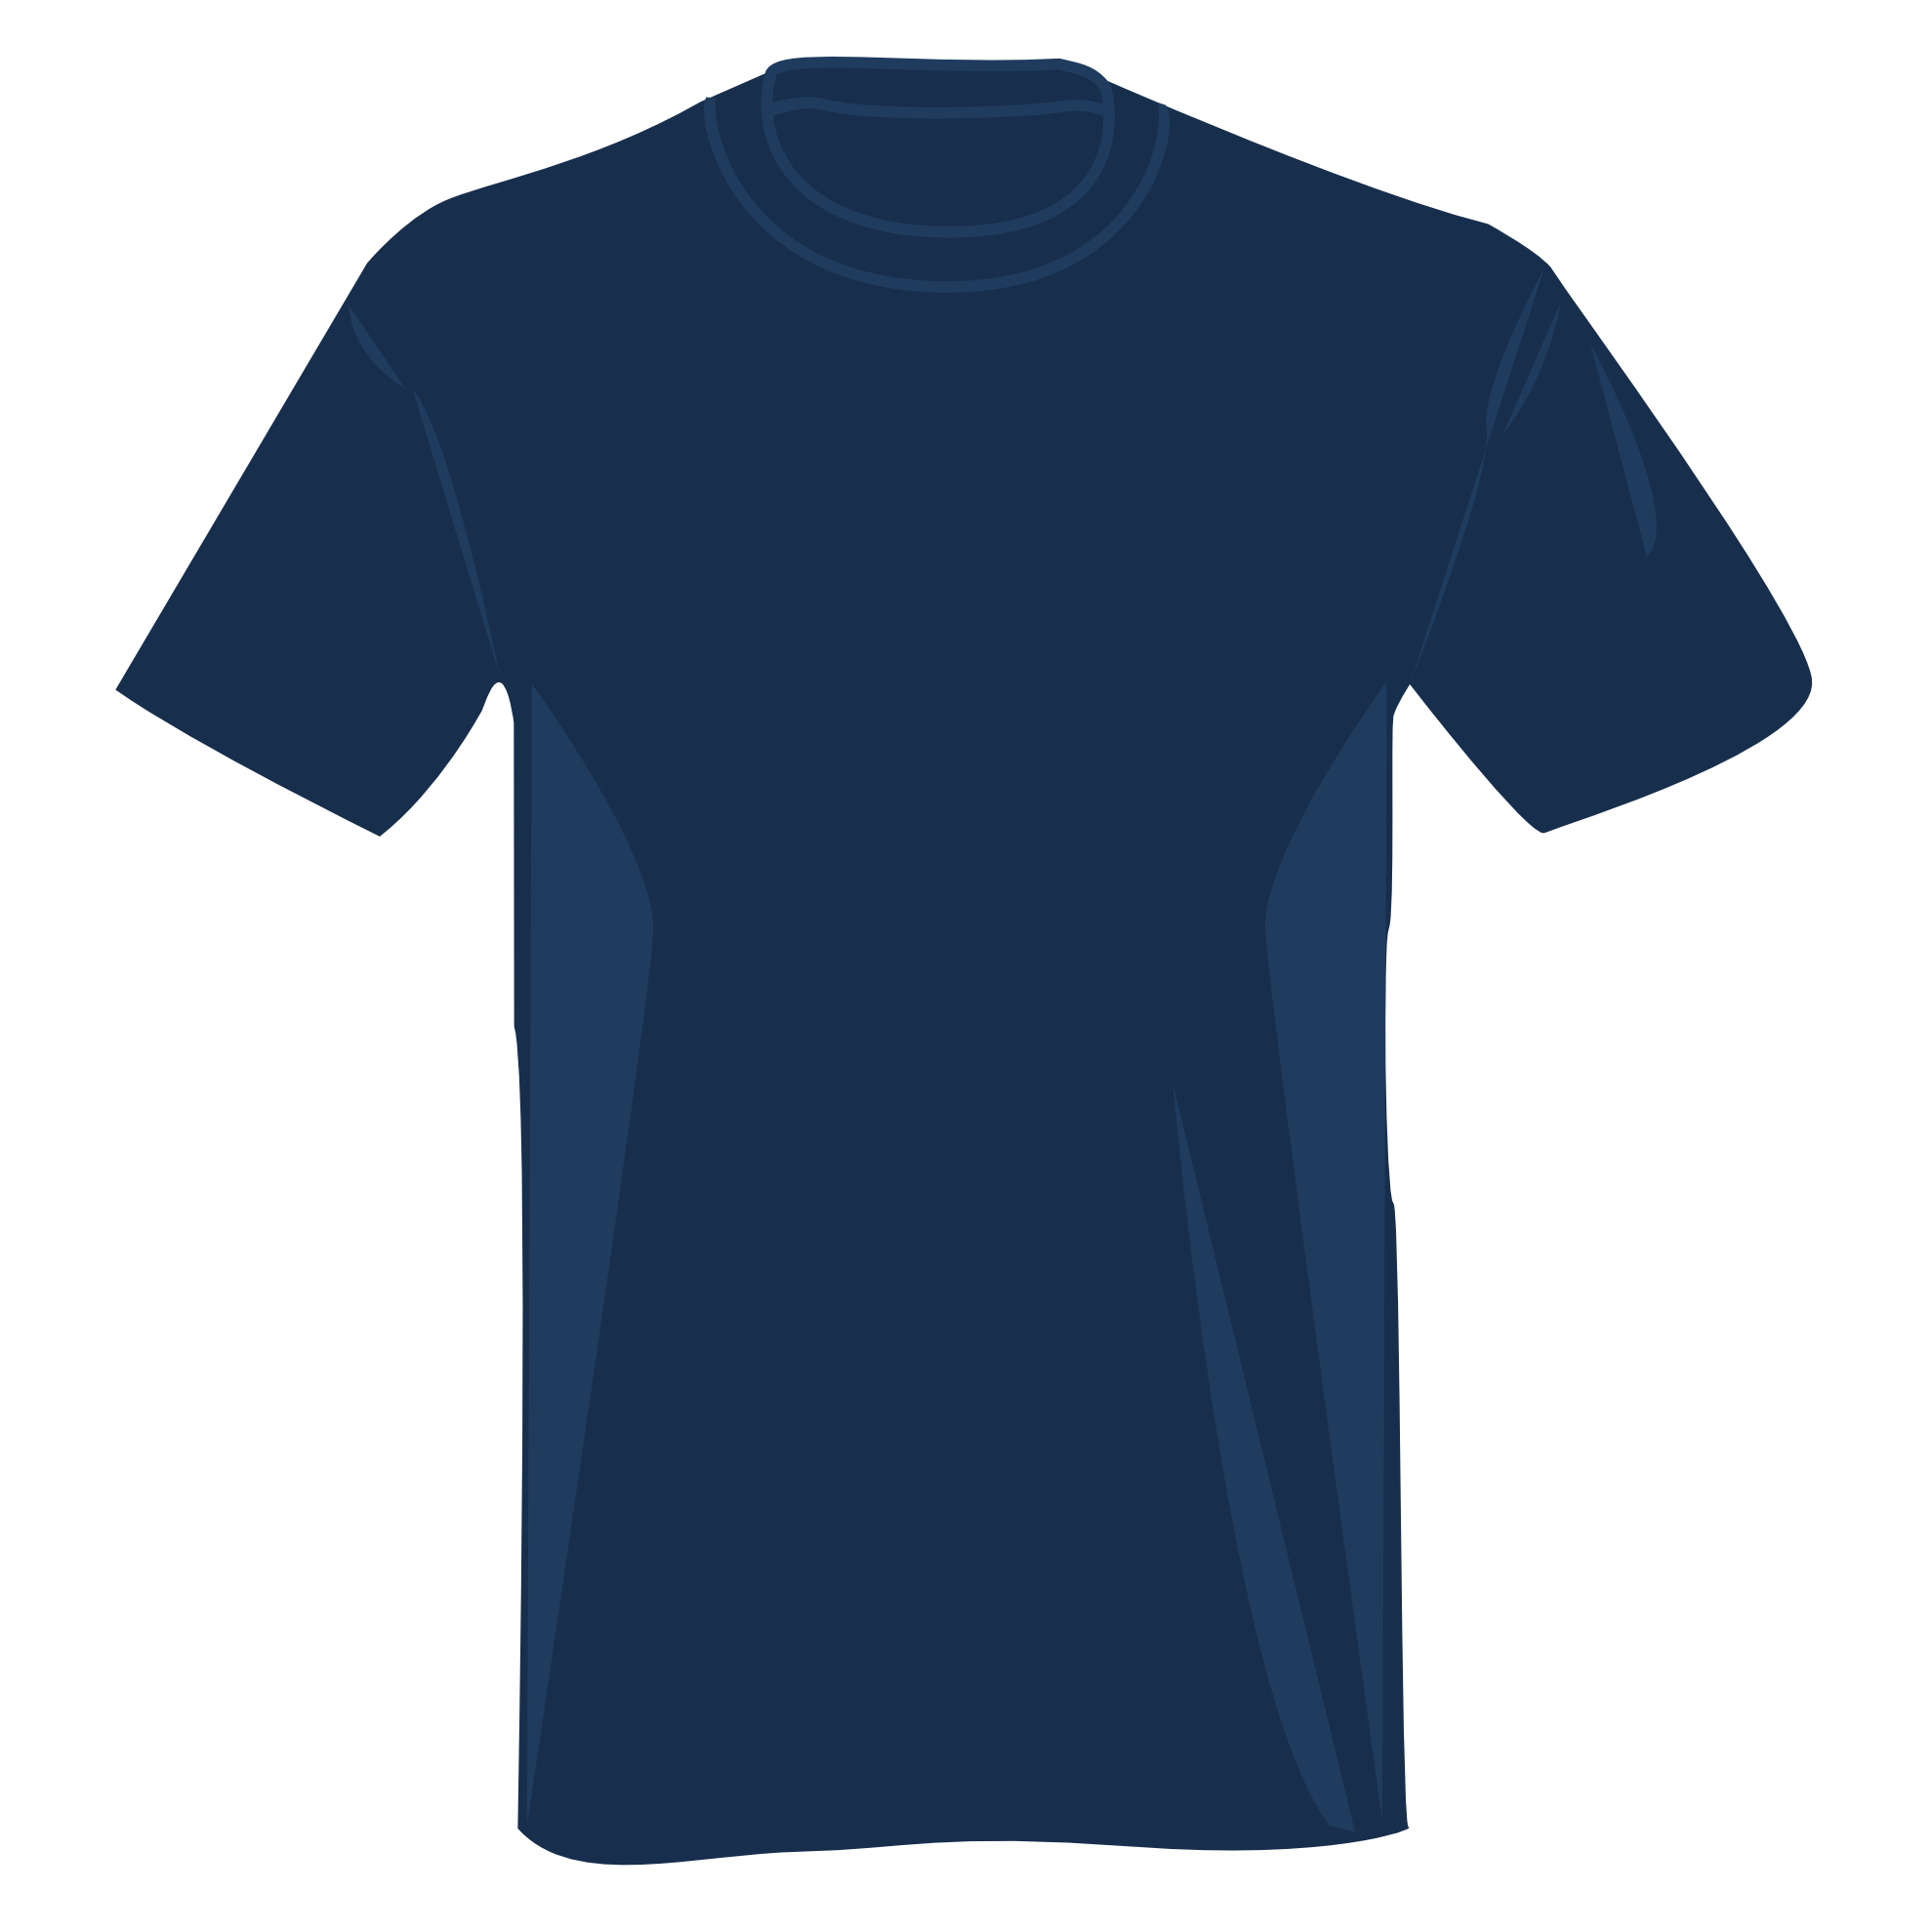 T shirt in png clipart best for Navy blue t shirt template